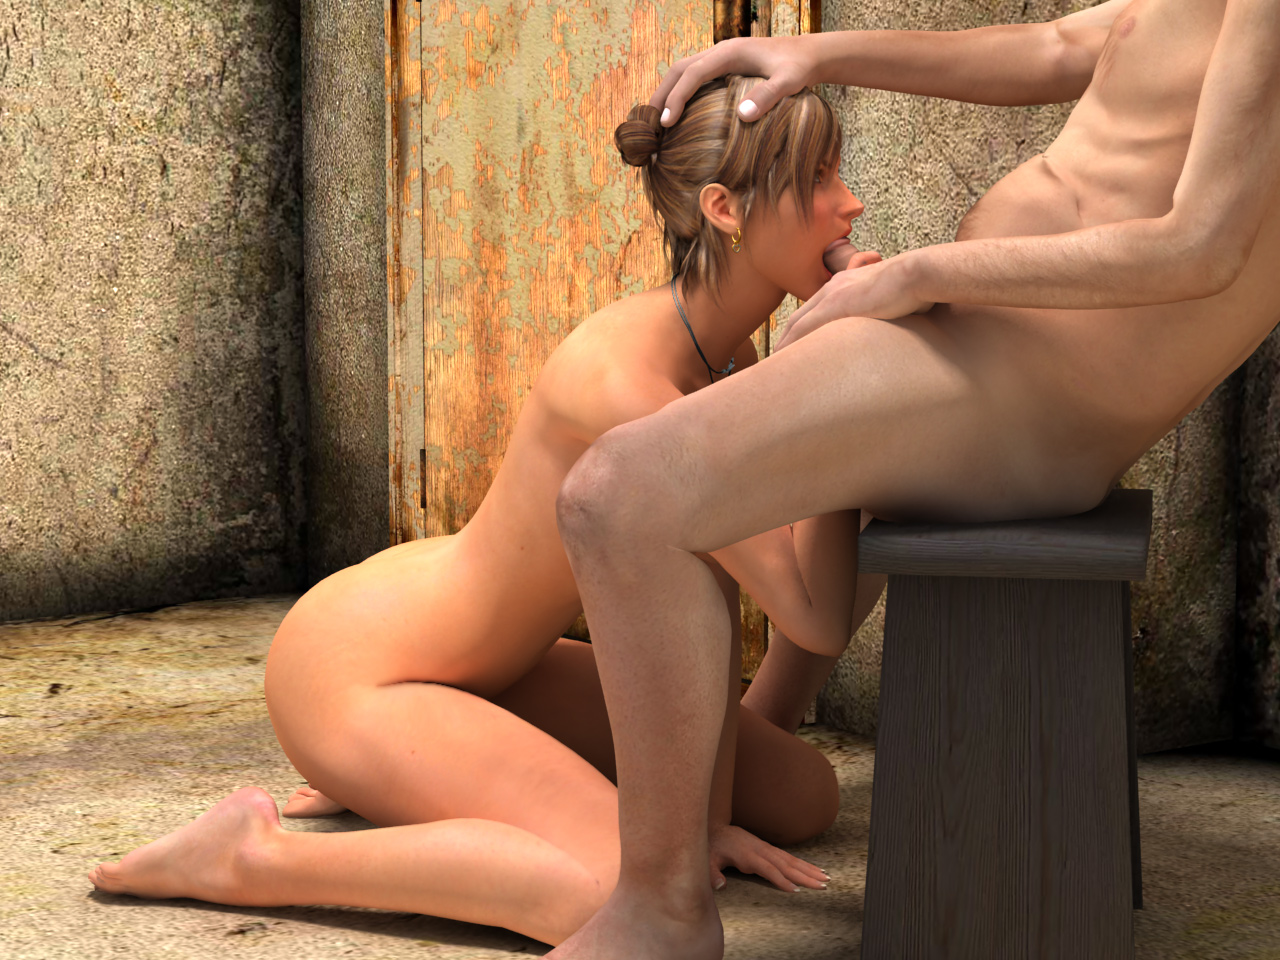 Erotic extreme 3d sex games anime video